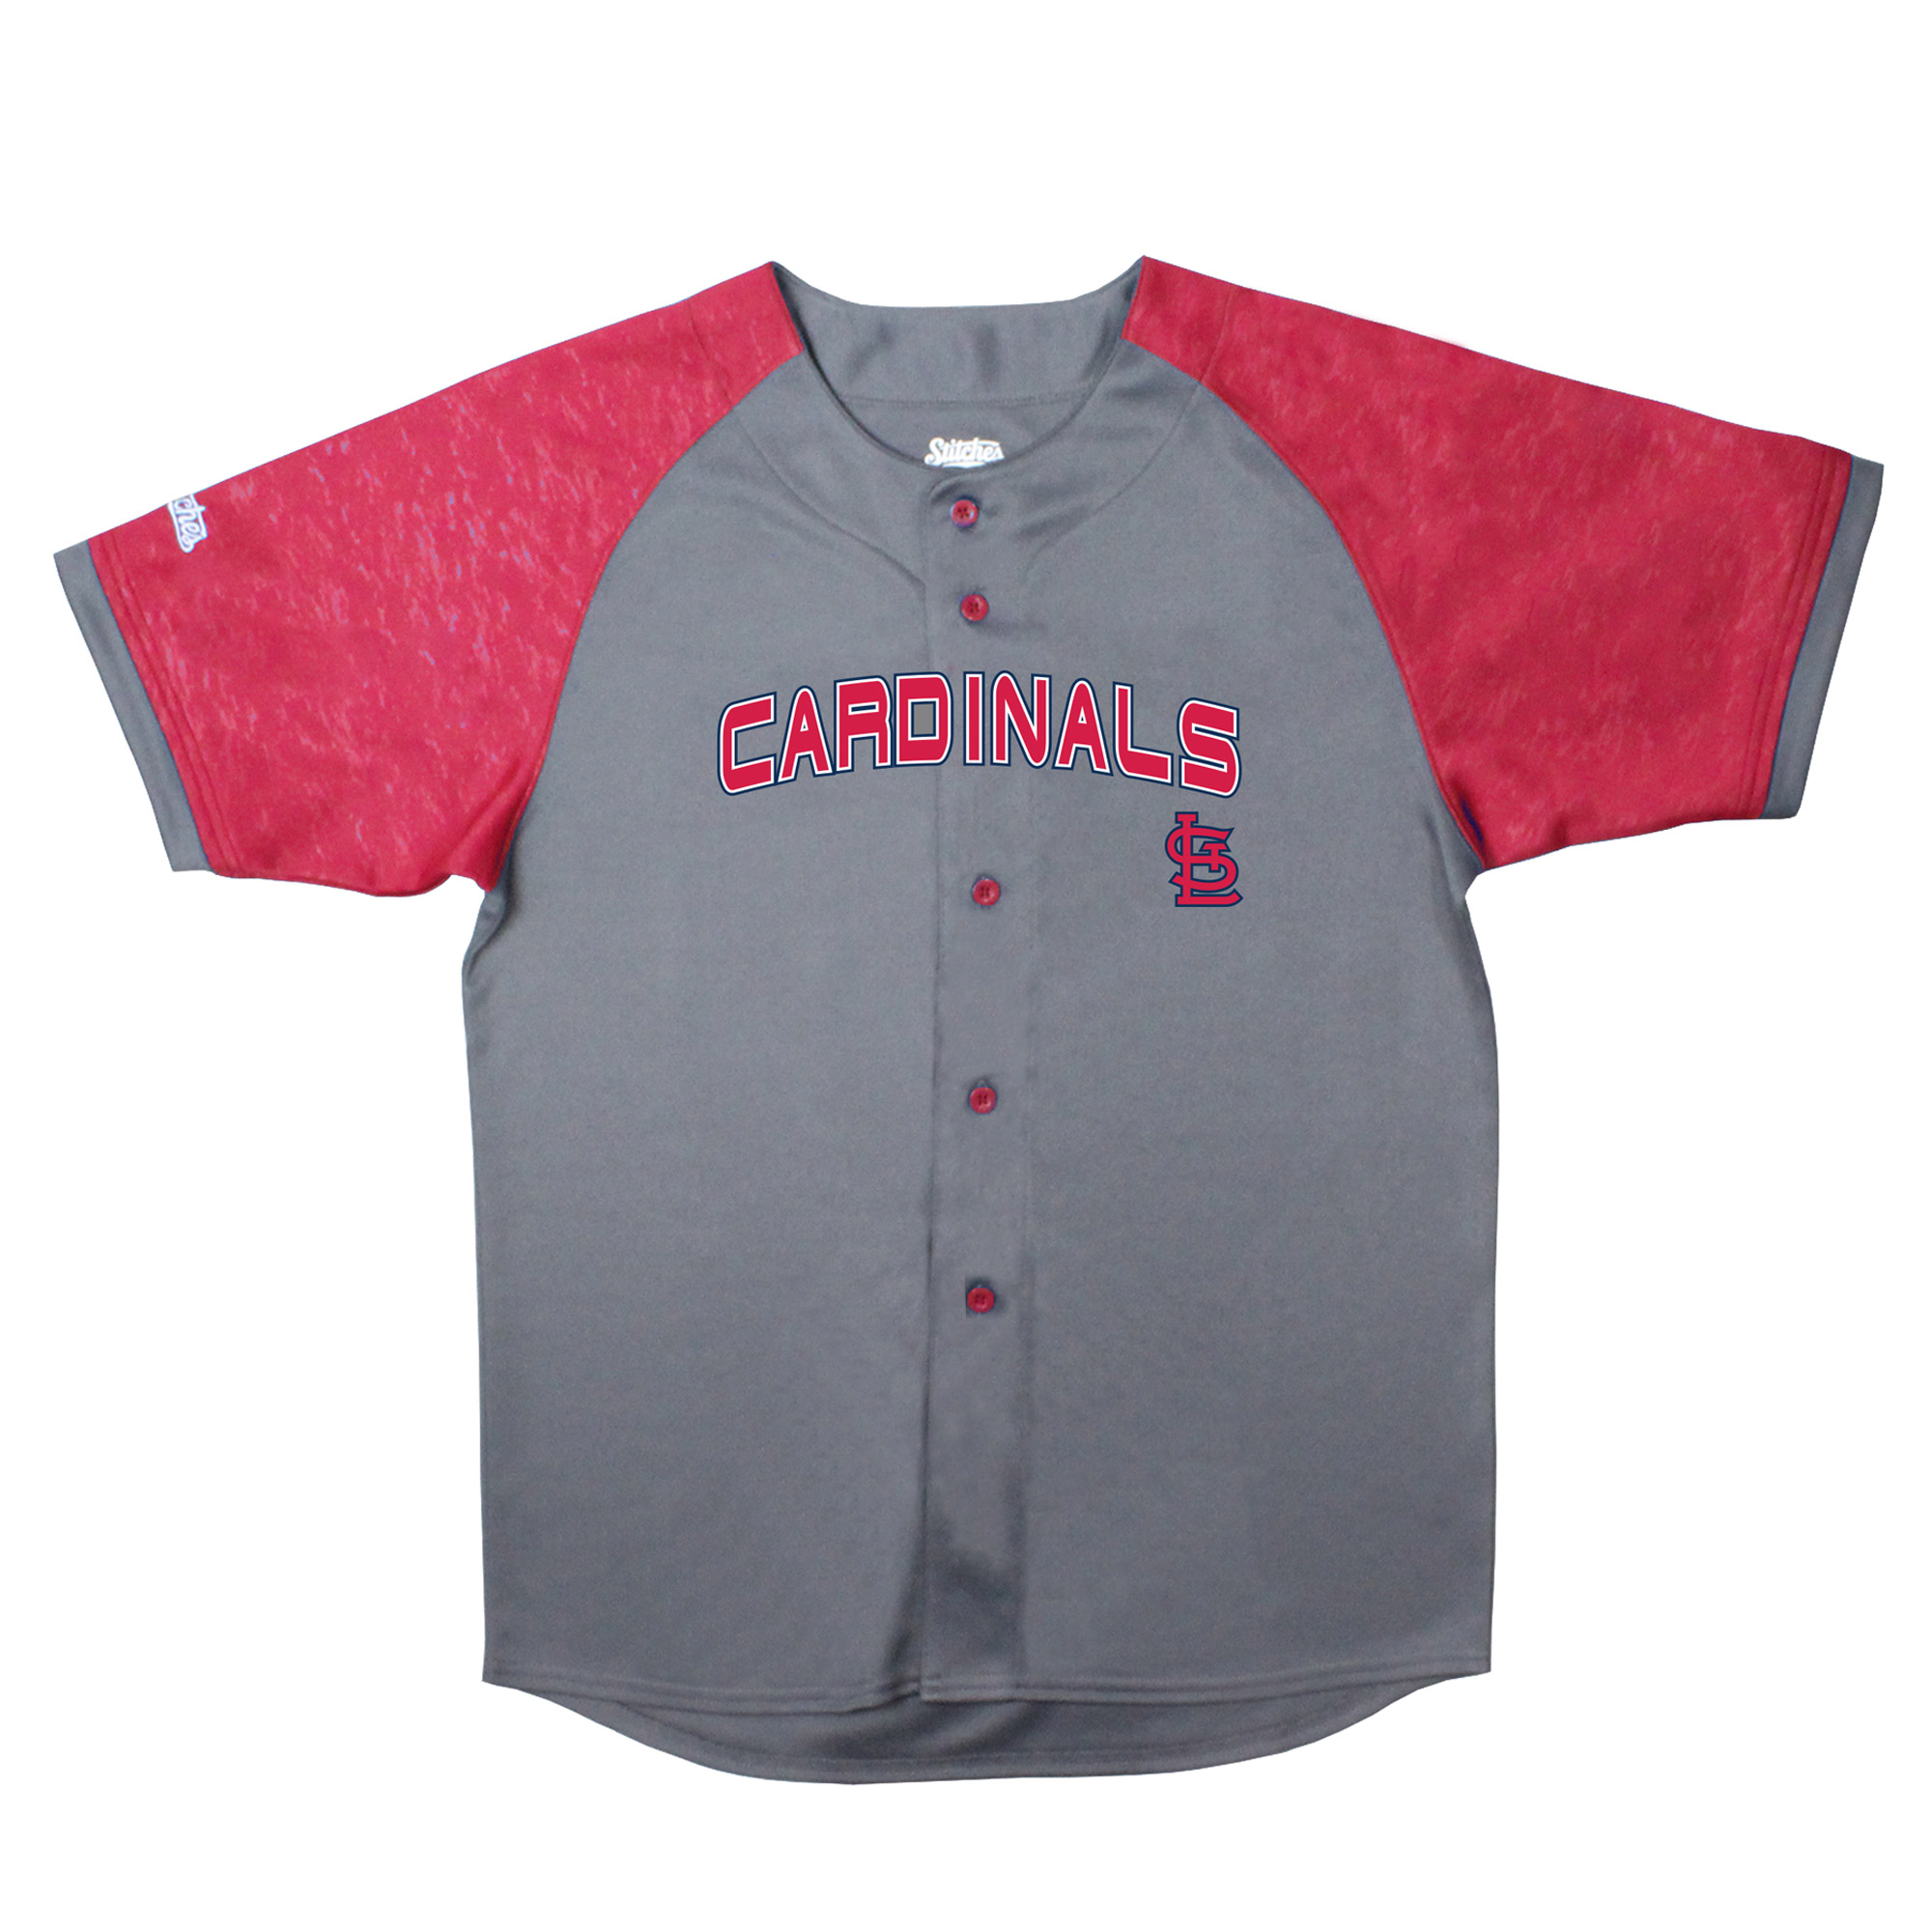 St. Louis Cardinals Stitches Youth Glitch Jersey - Charcoal/Red